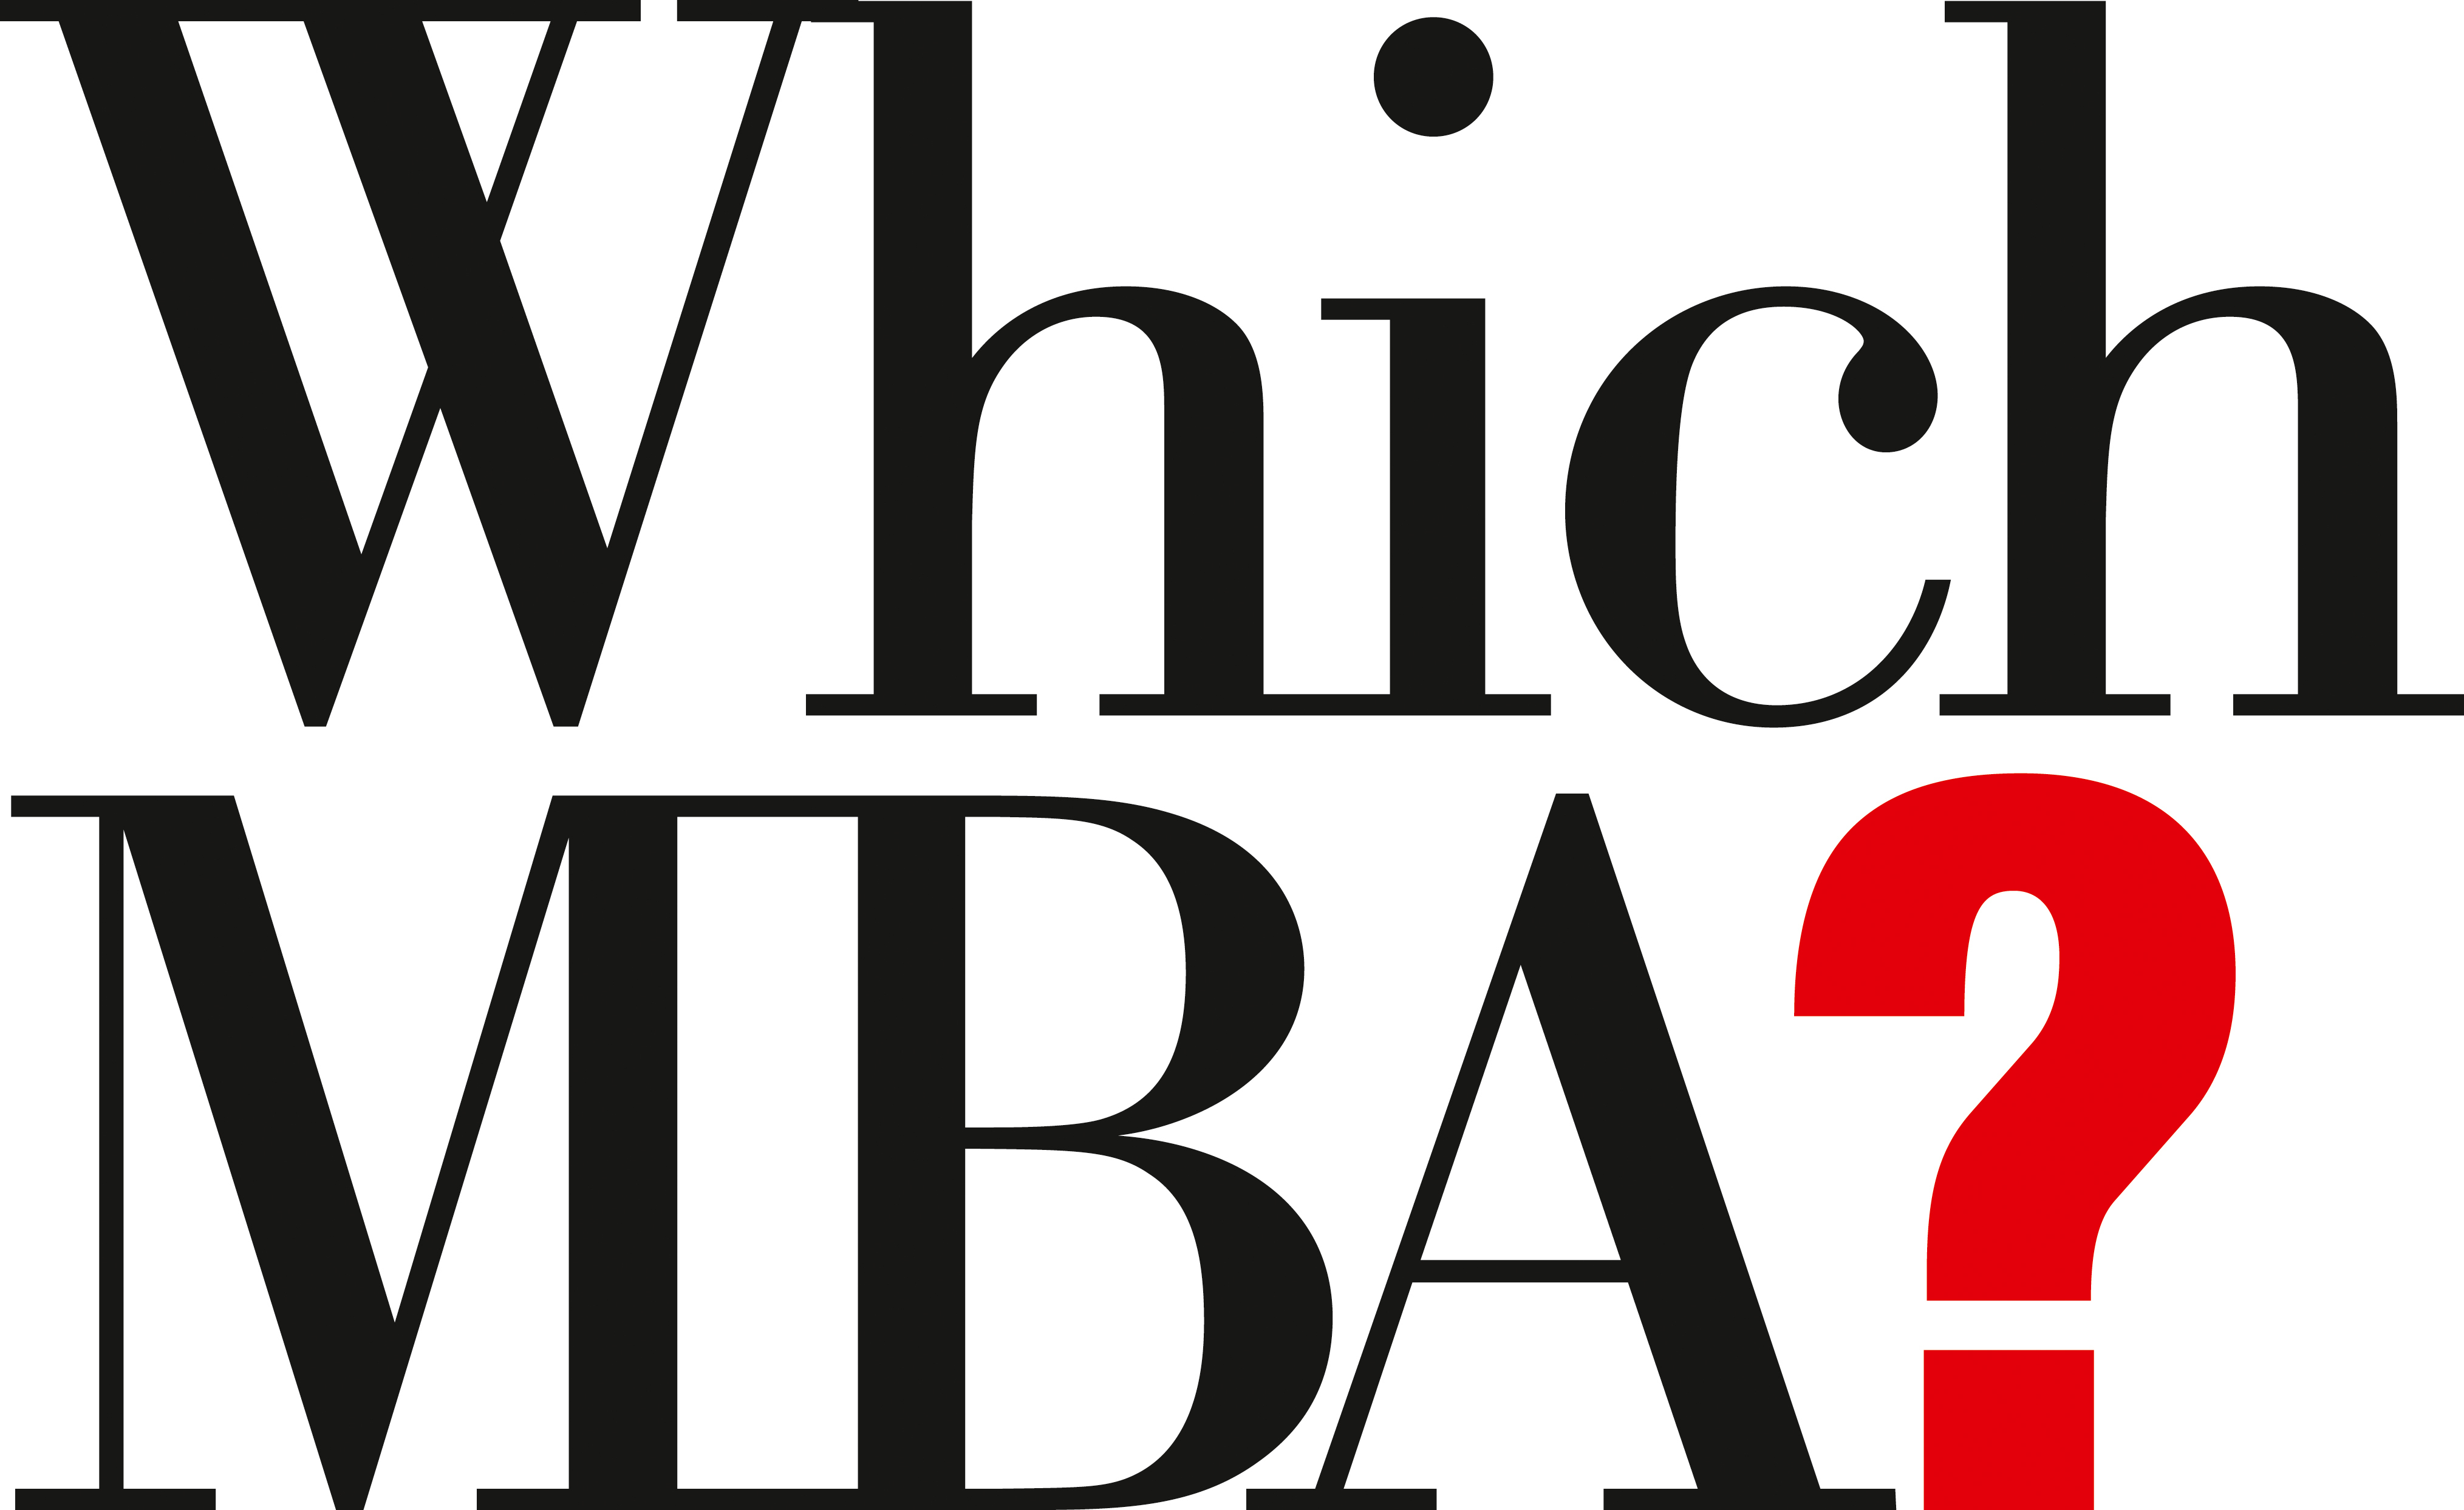 Which MBA logo